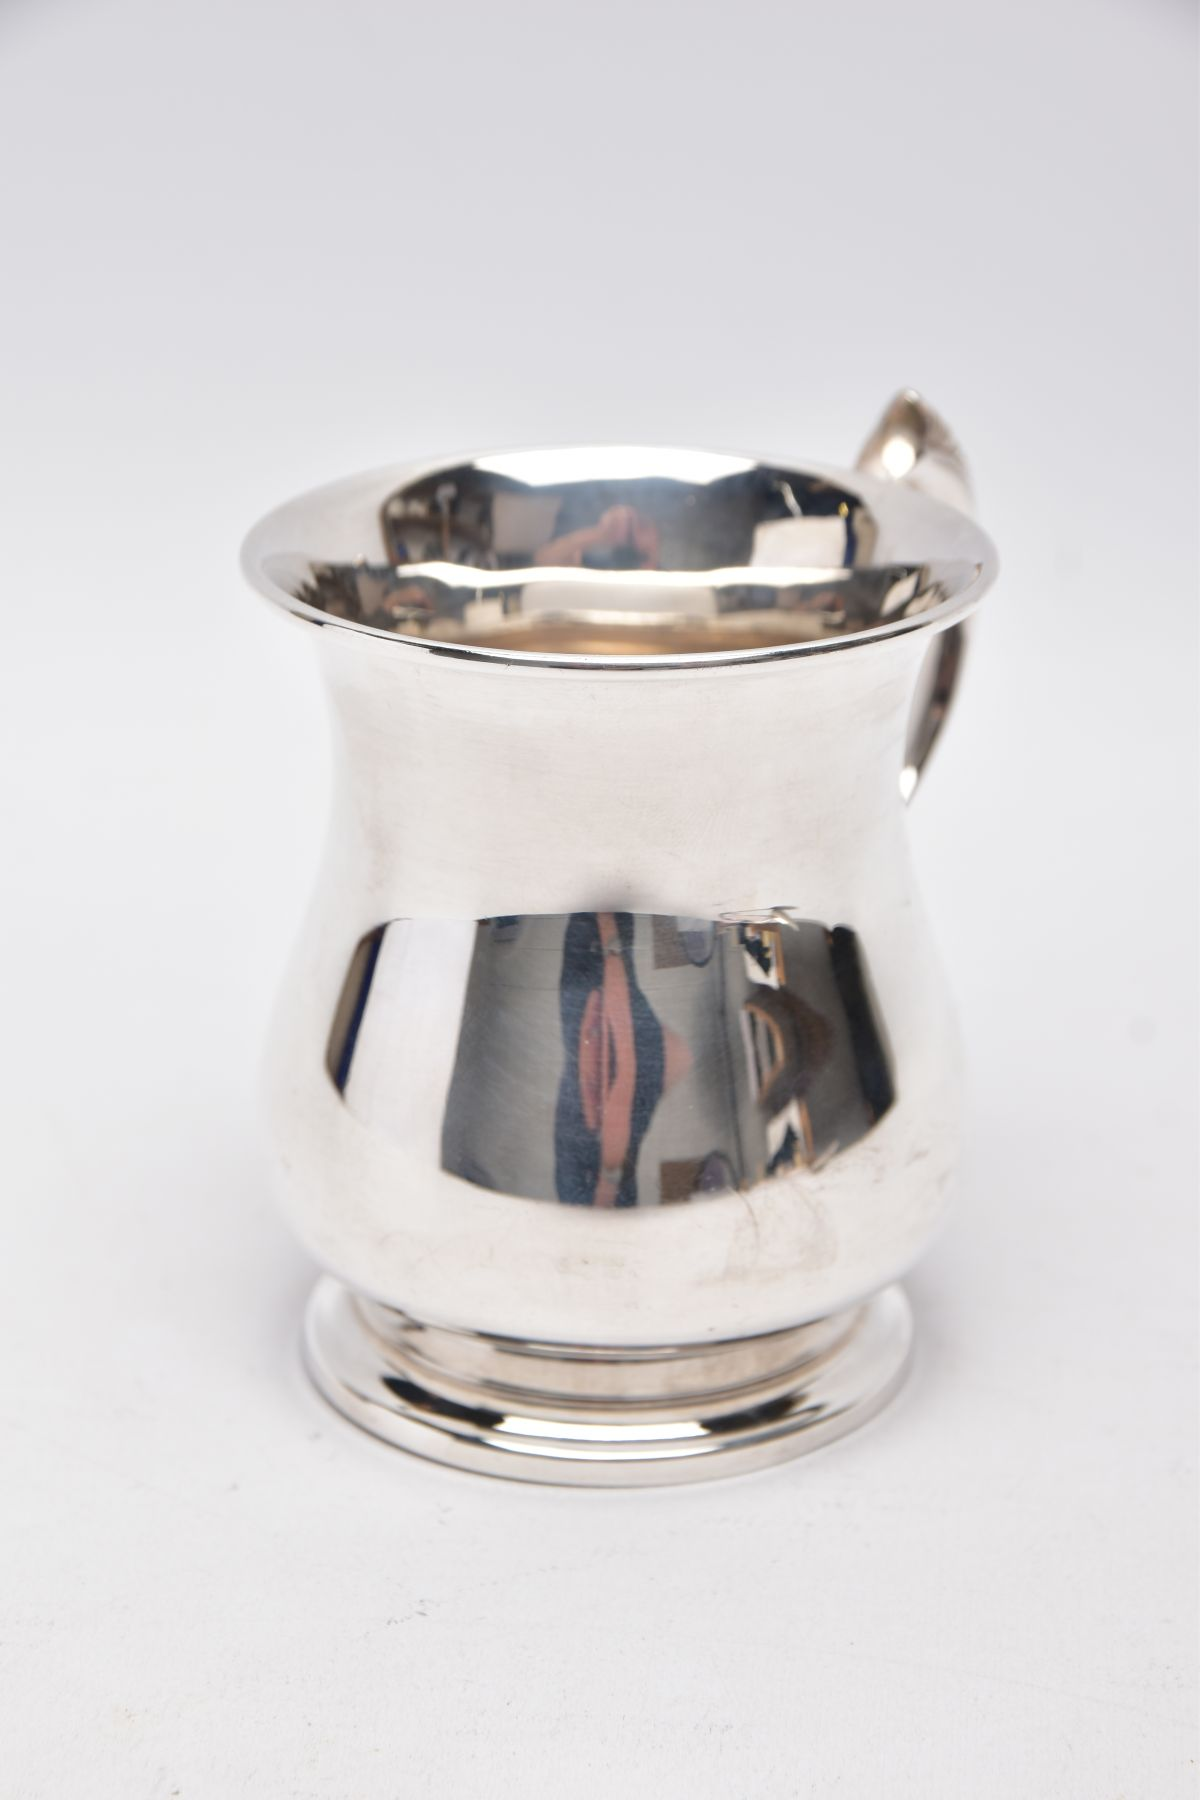 A SILVER TANKARD, bell shaped body with a feather detailed handle, hallmarked 'Roberts & Dore' - Image 3 of 5